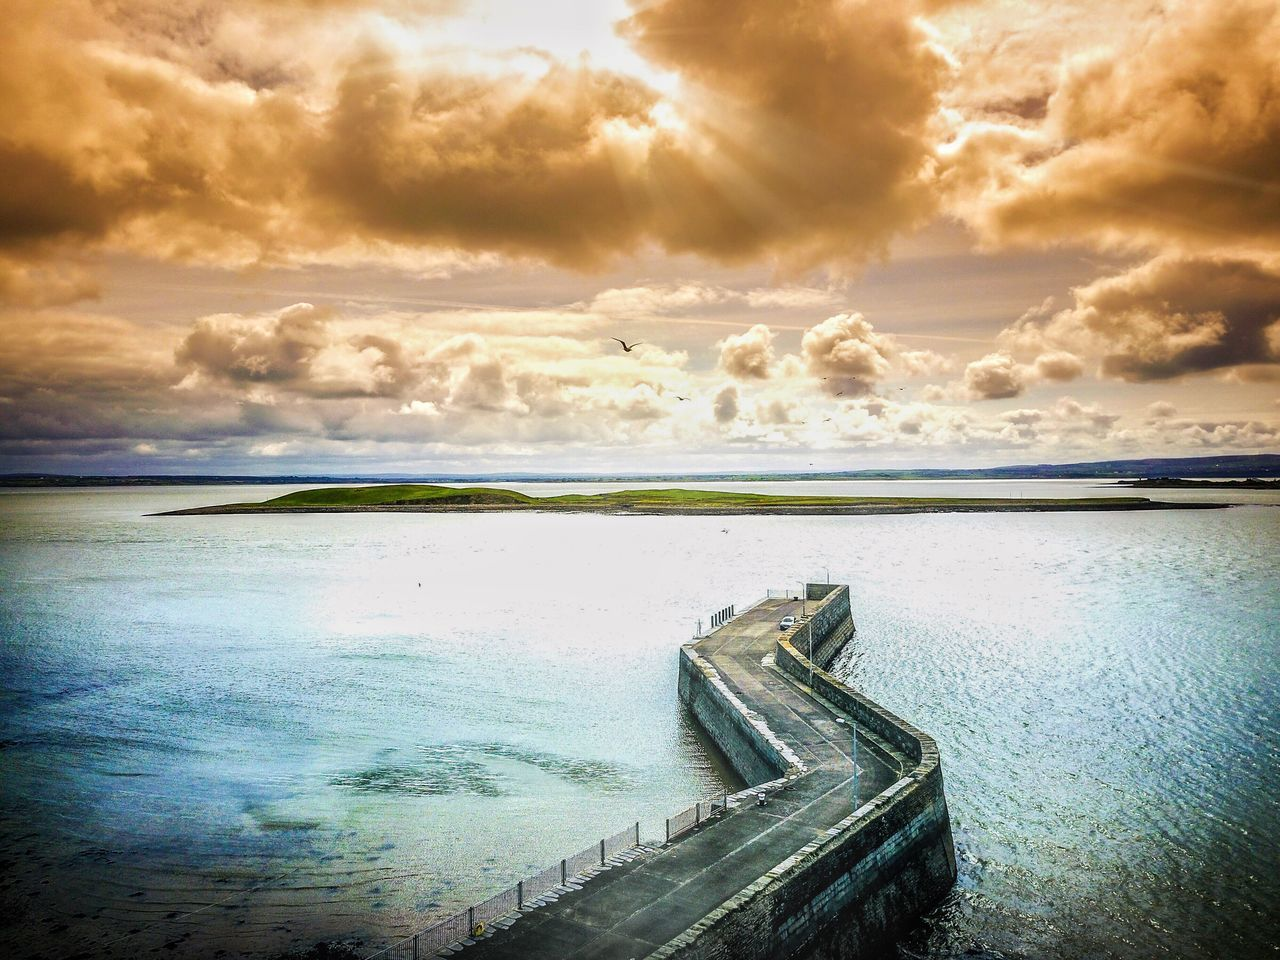 Water Sky Nature Cloud - Sky Beauty In Nature Sea Scenics No People Tranquility Outdoors Day Kilrush Cappa Ireland